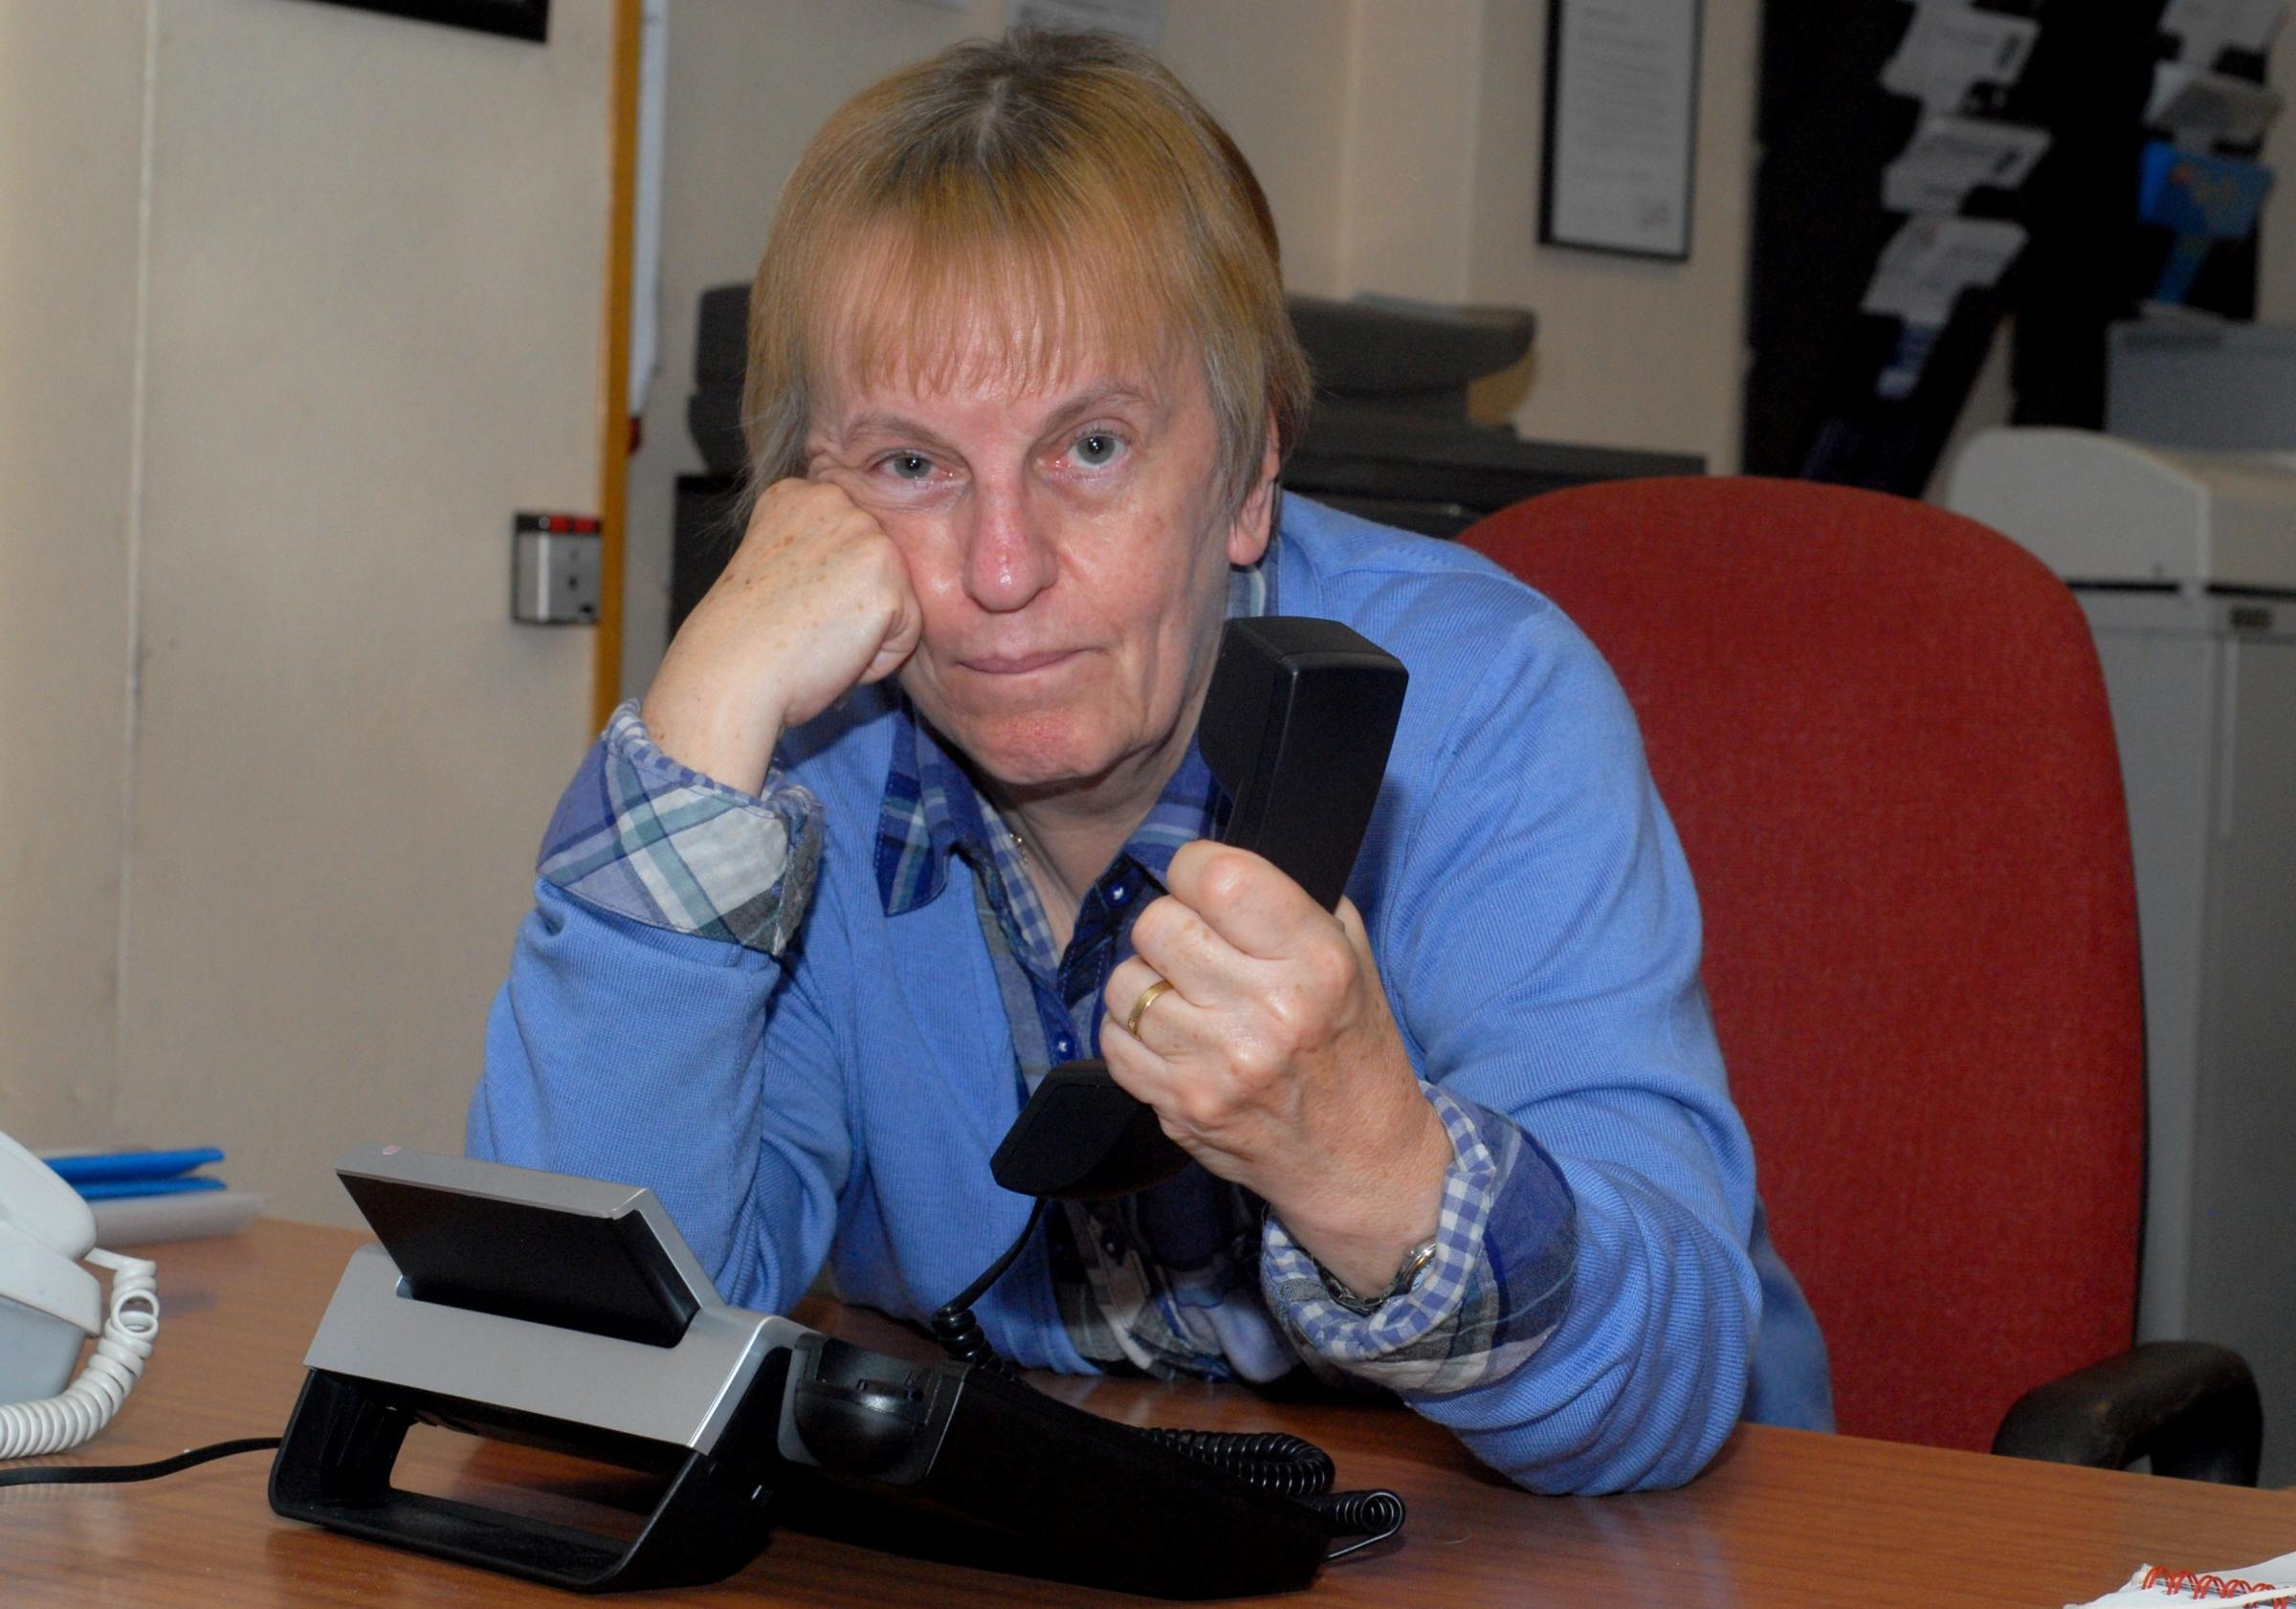 Charity worker conned by telephone scam